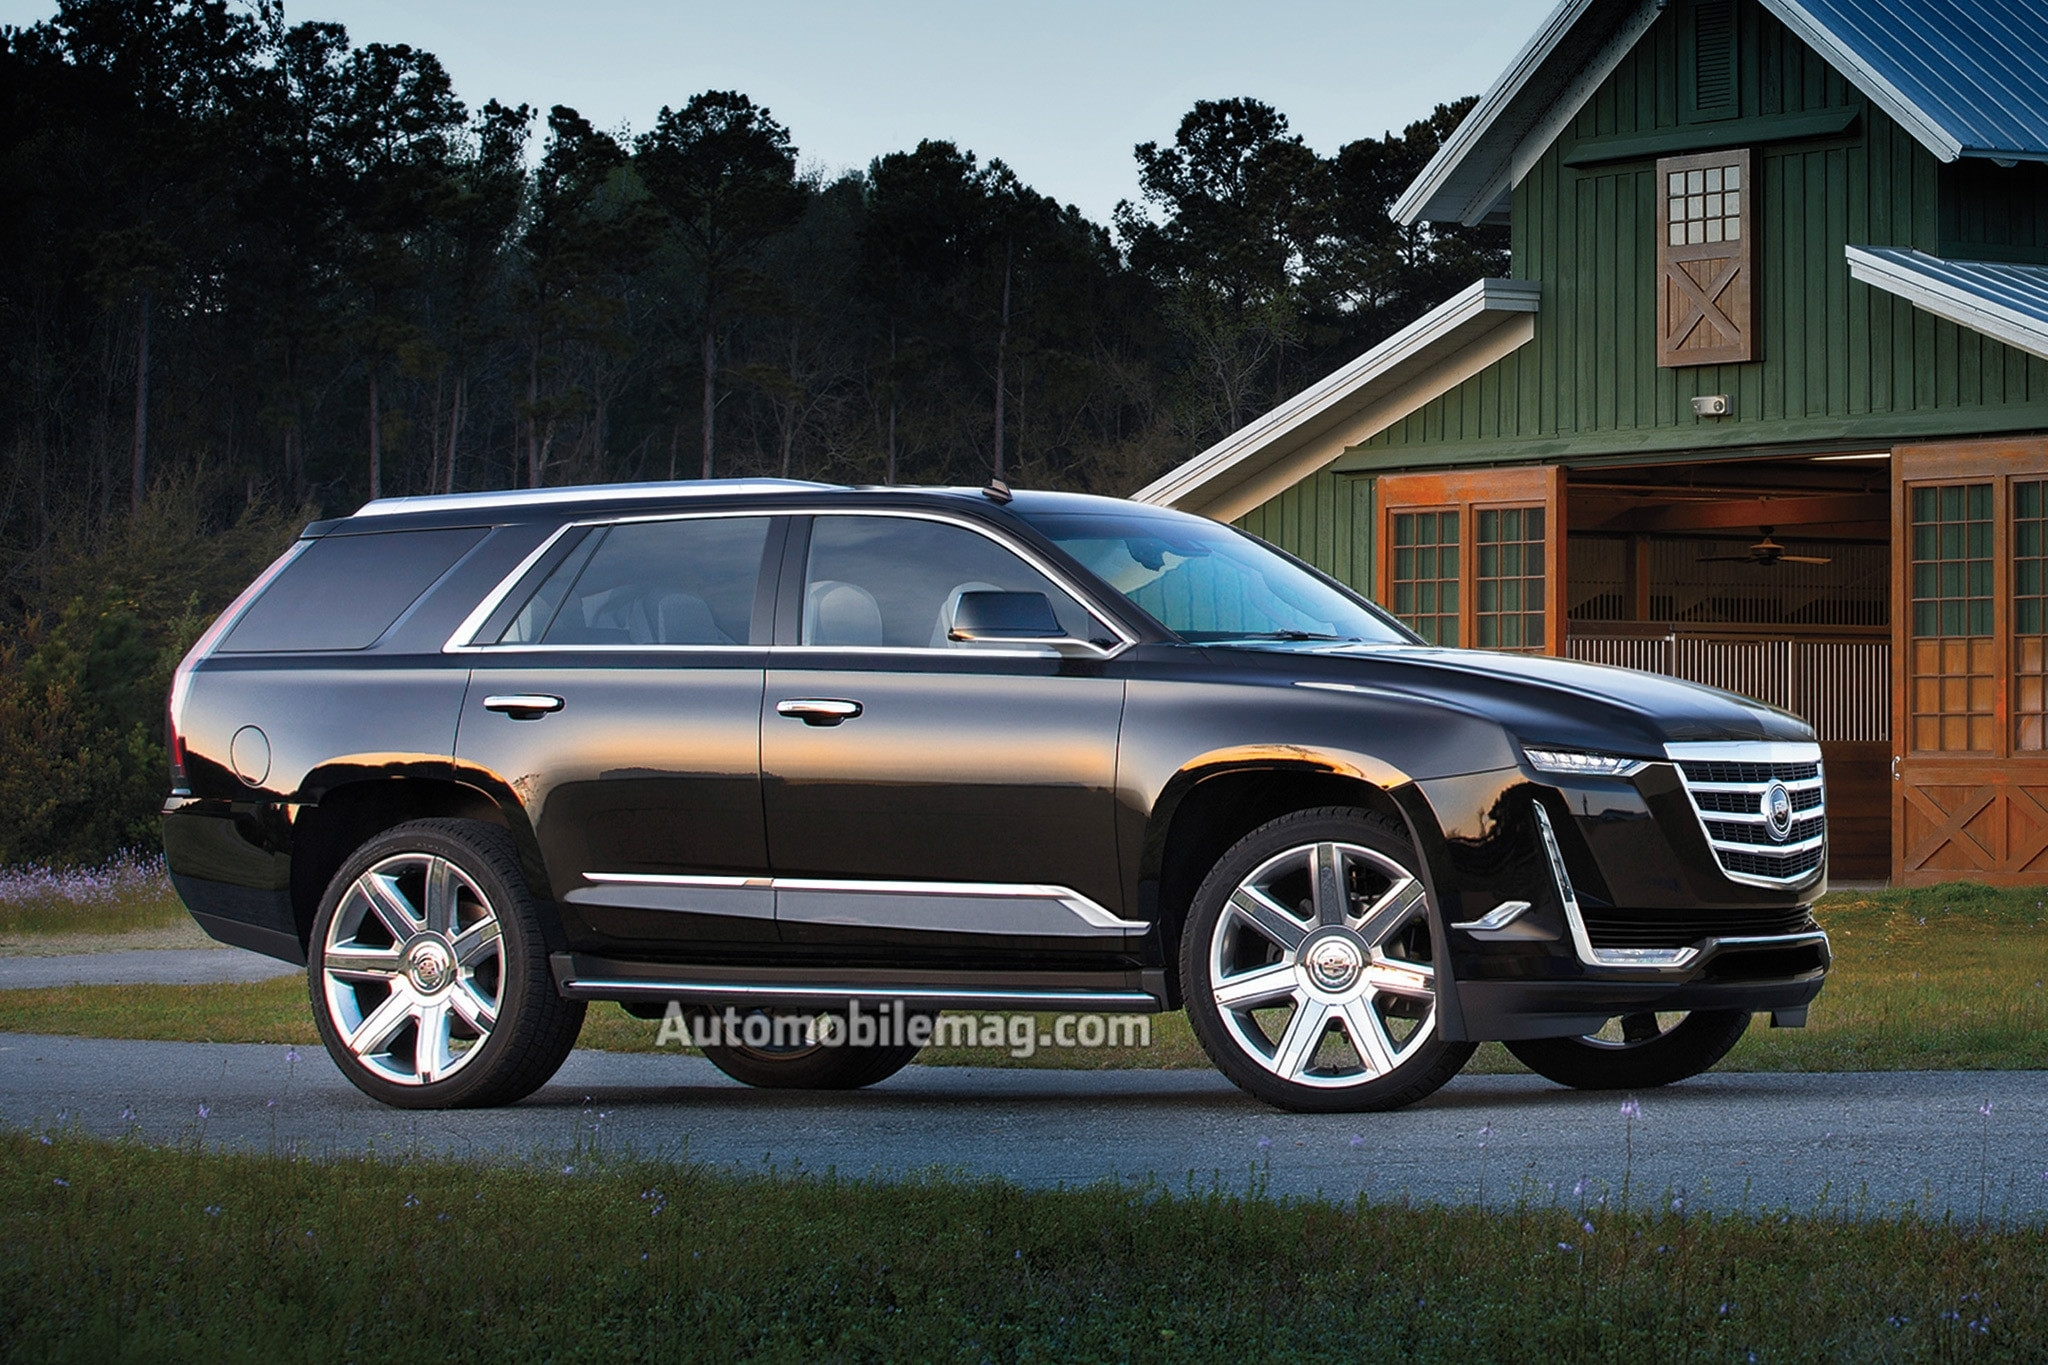 37 All New 2020 Chevrolet Equinox Redesign